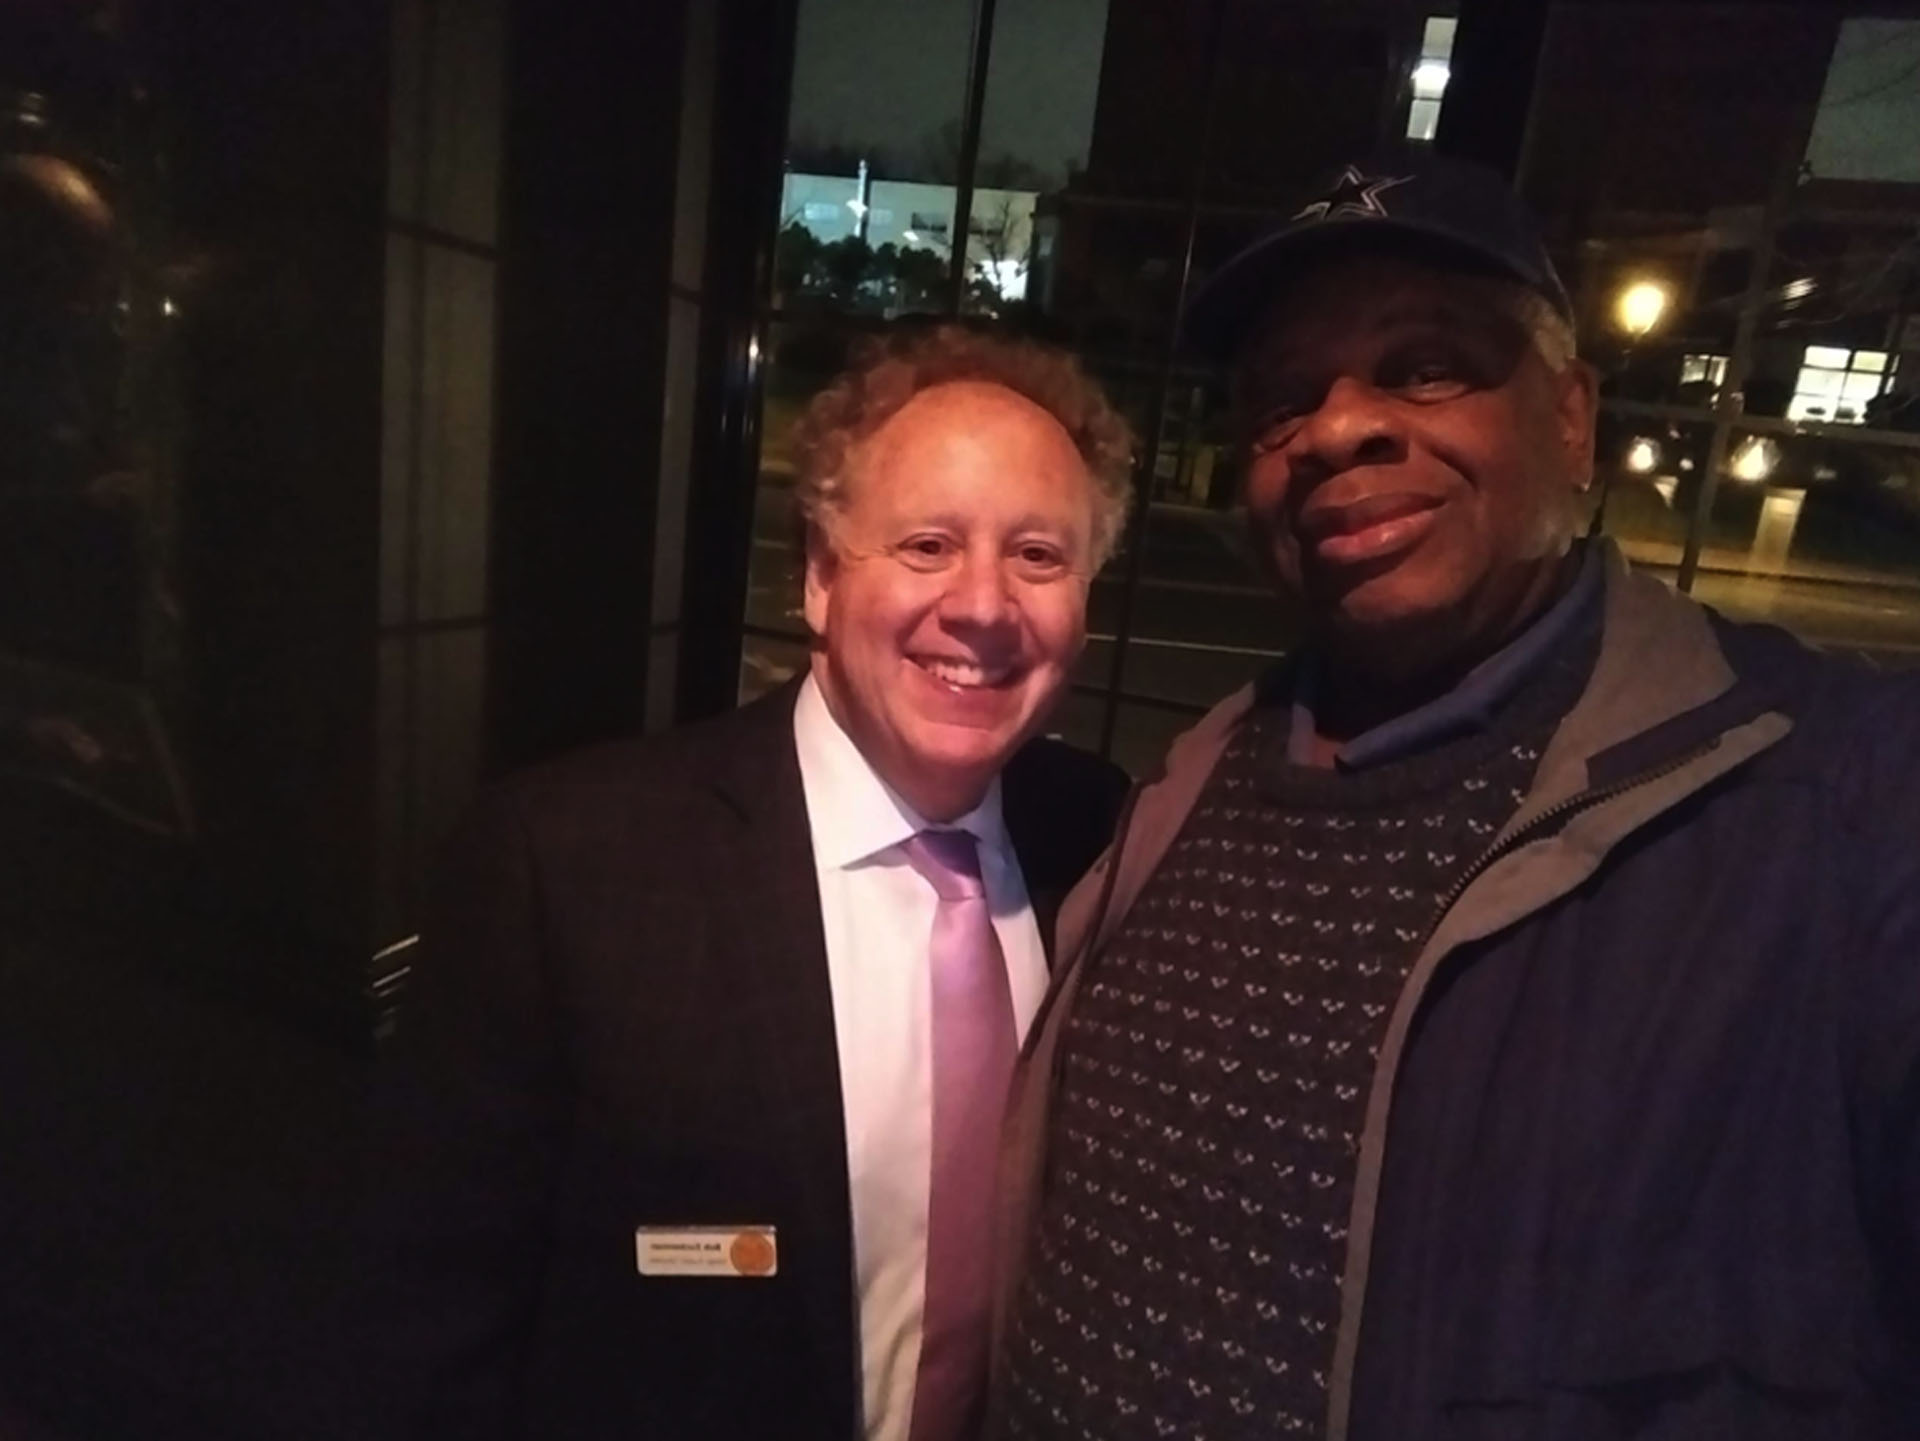 Gregory Burrus with the Executive Director of SOVCA Bob Zuckerman. Downtown After Sundown is a program sponsored by the South Orange Village Center Alliance and the Town of South Orange.   https://www.sovillagecenter.org/